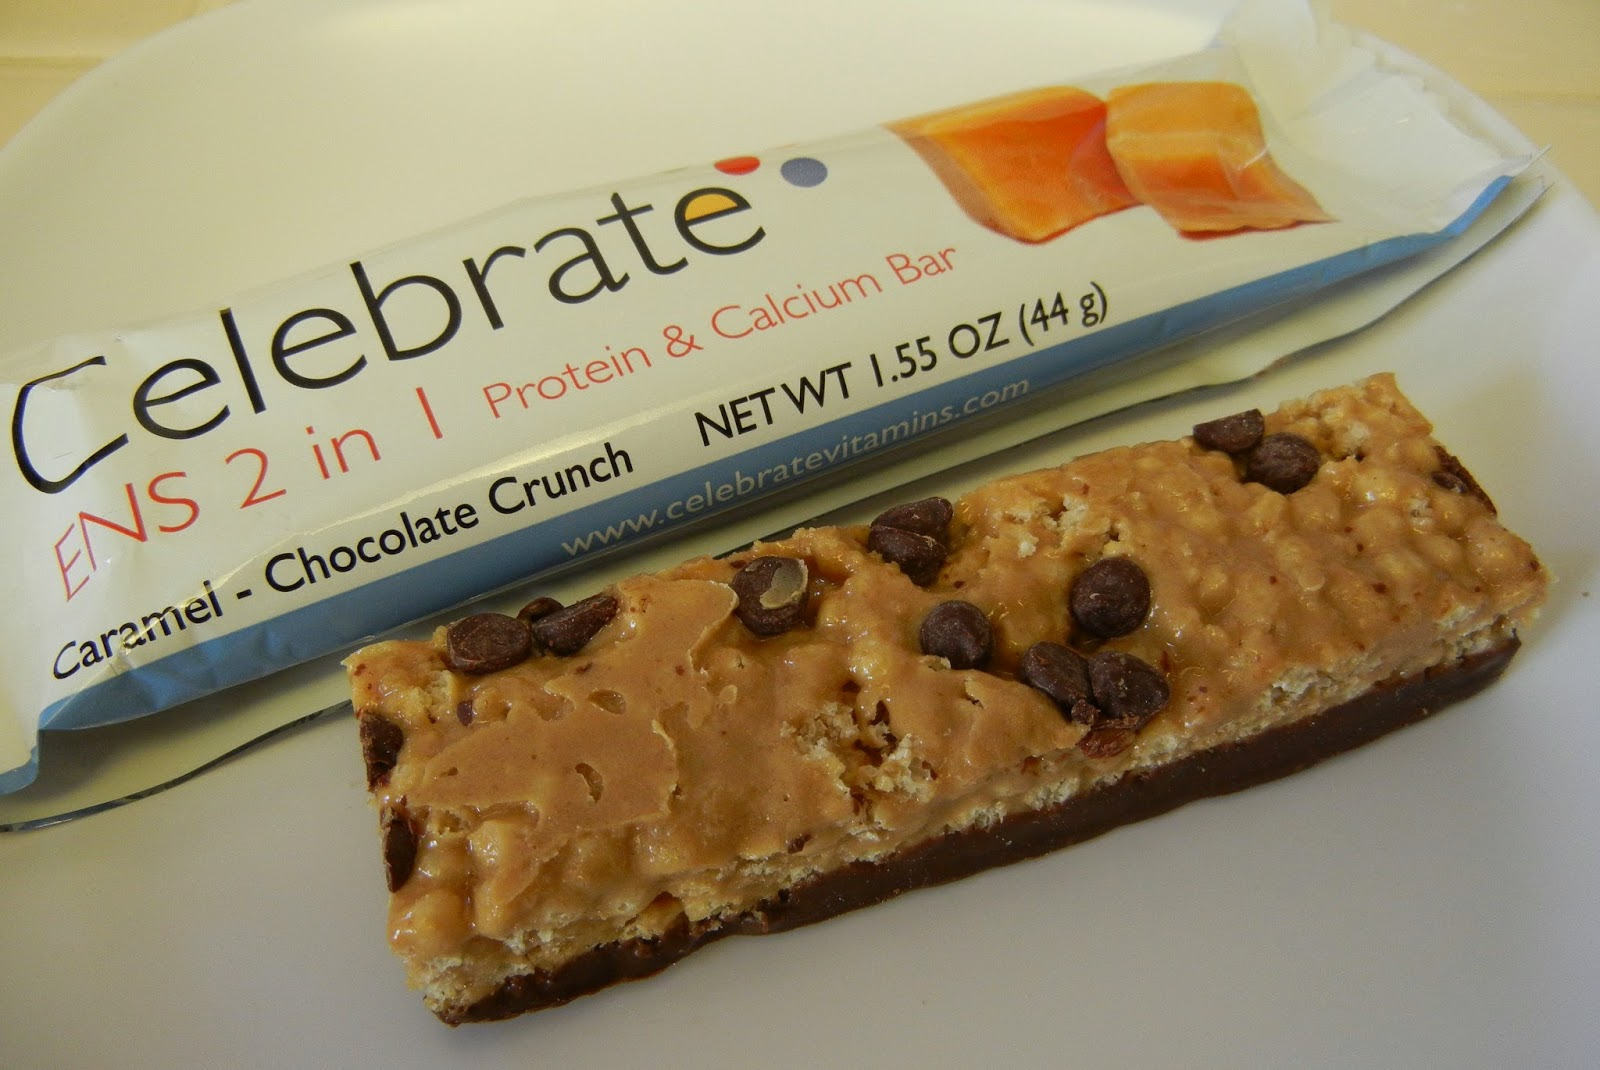 Celebrate+Vitamins+ENS+2+in+1+Protein+and+Calcium+Bar+Caramel+Chocolate+Crunch+Eggface Weight Loss Recipes Eggface and Celebrate Vitamins ENS 2 in 1 Protein Bar Giveaway